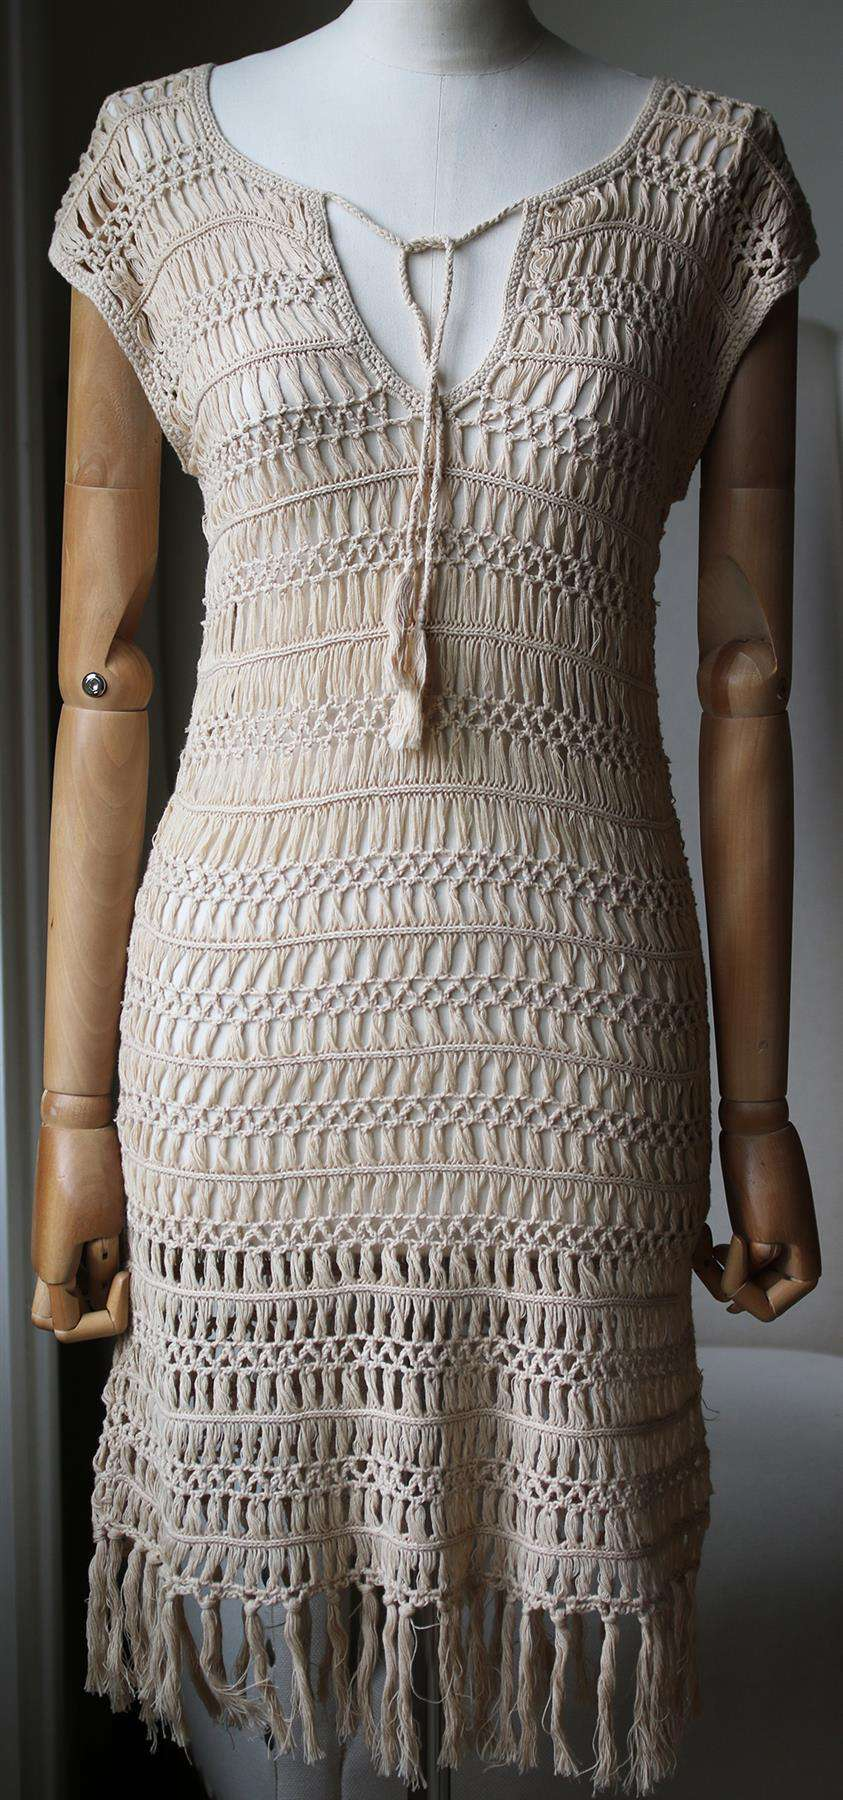 MELISSA ODABASH BARRIE MACRAMÉ COTTON DRESS SMALL